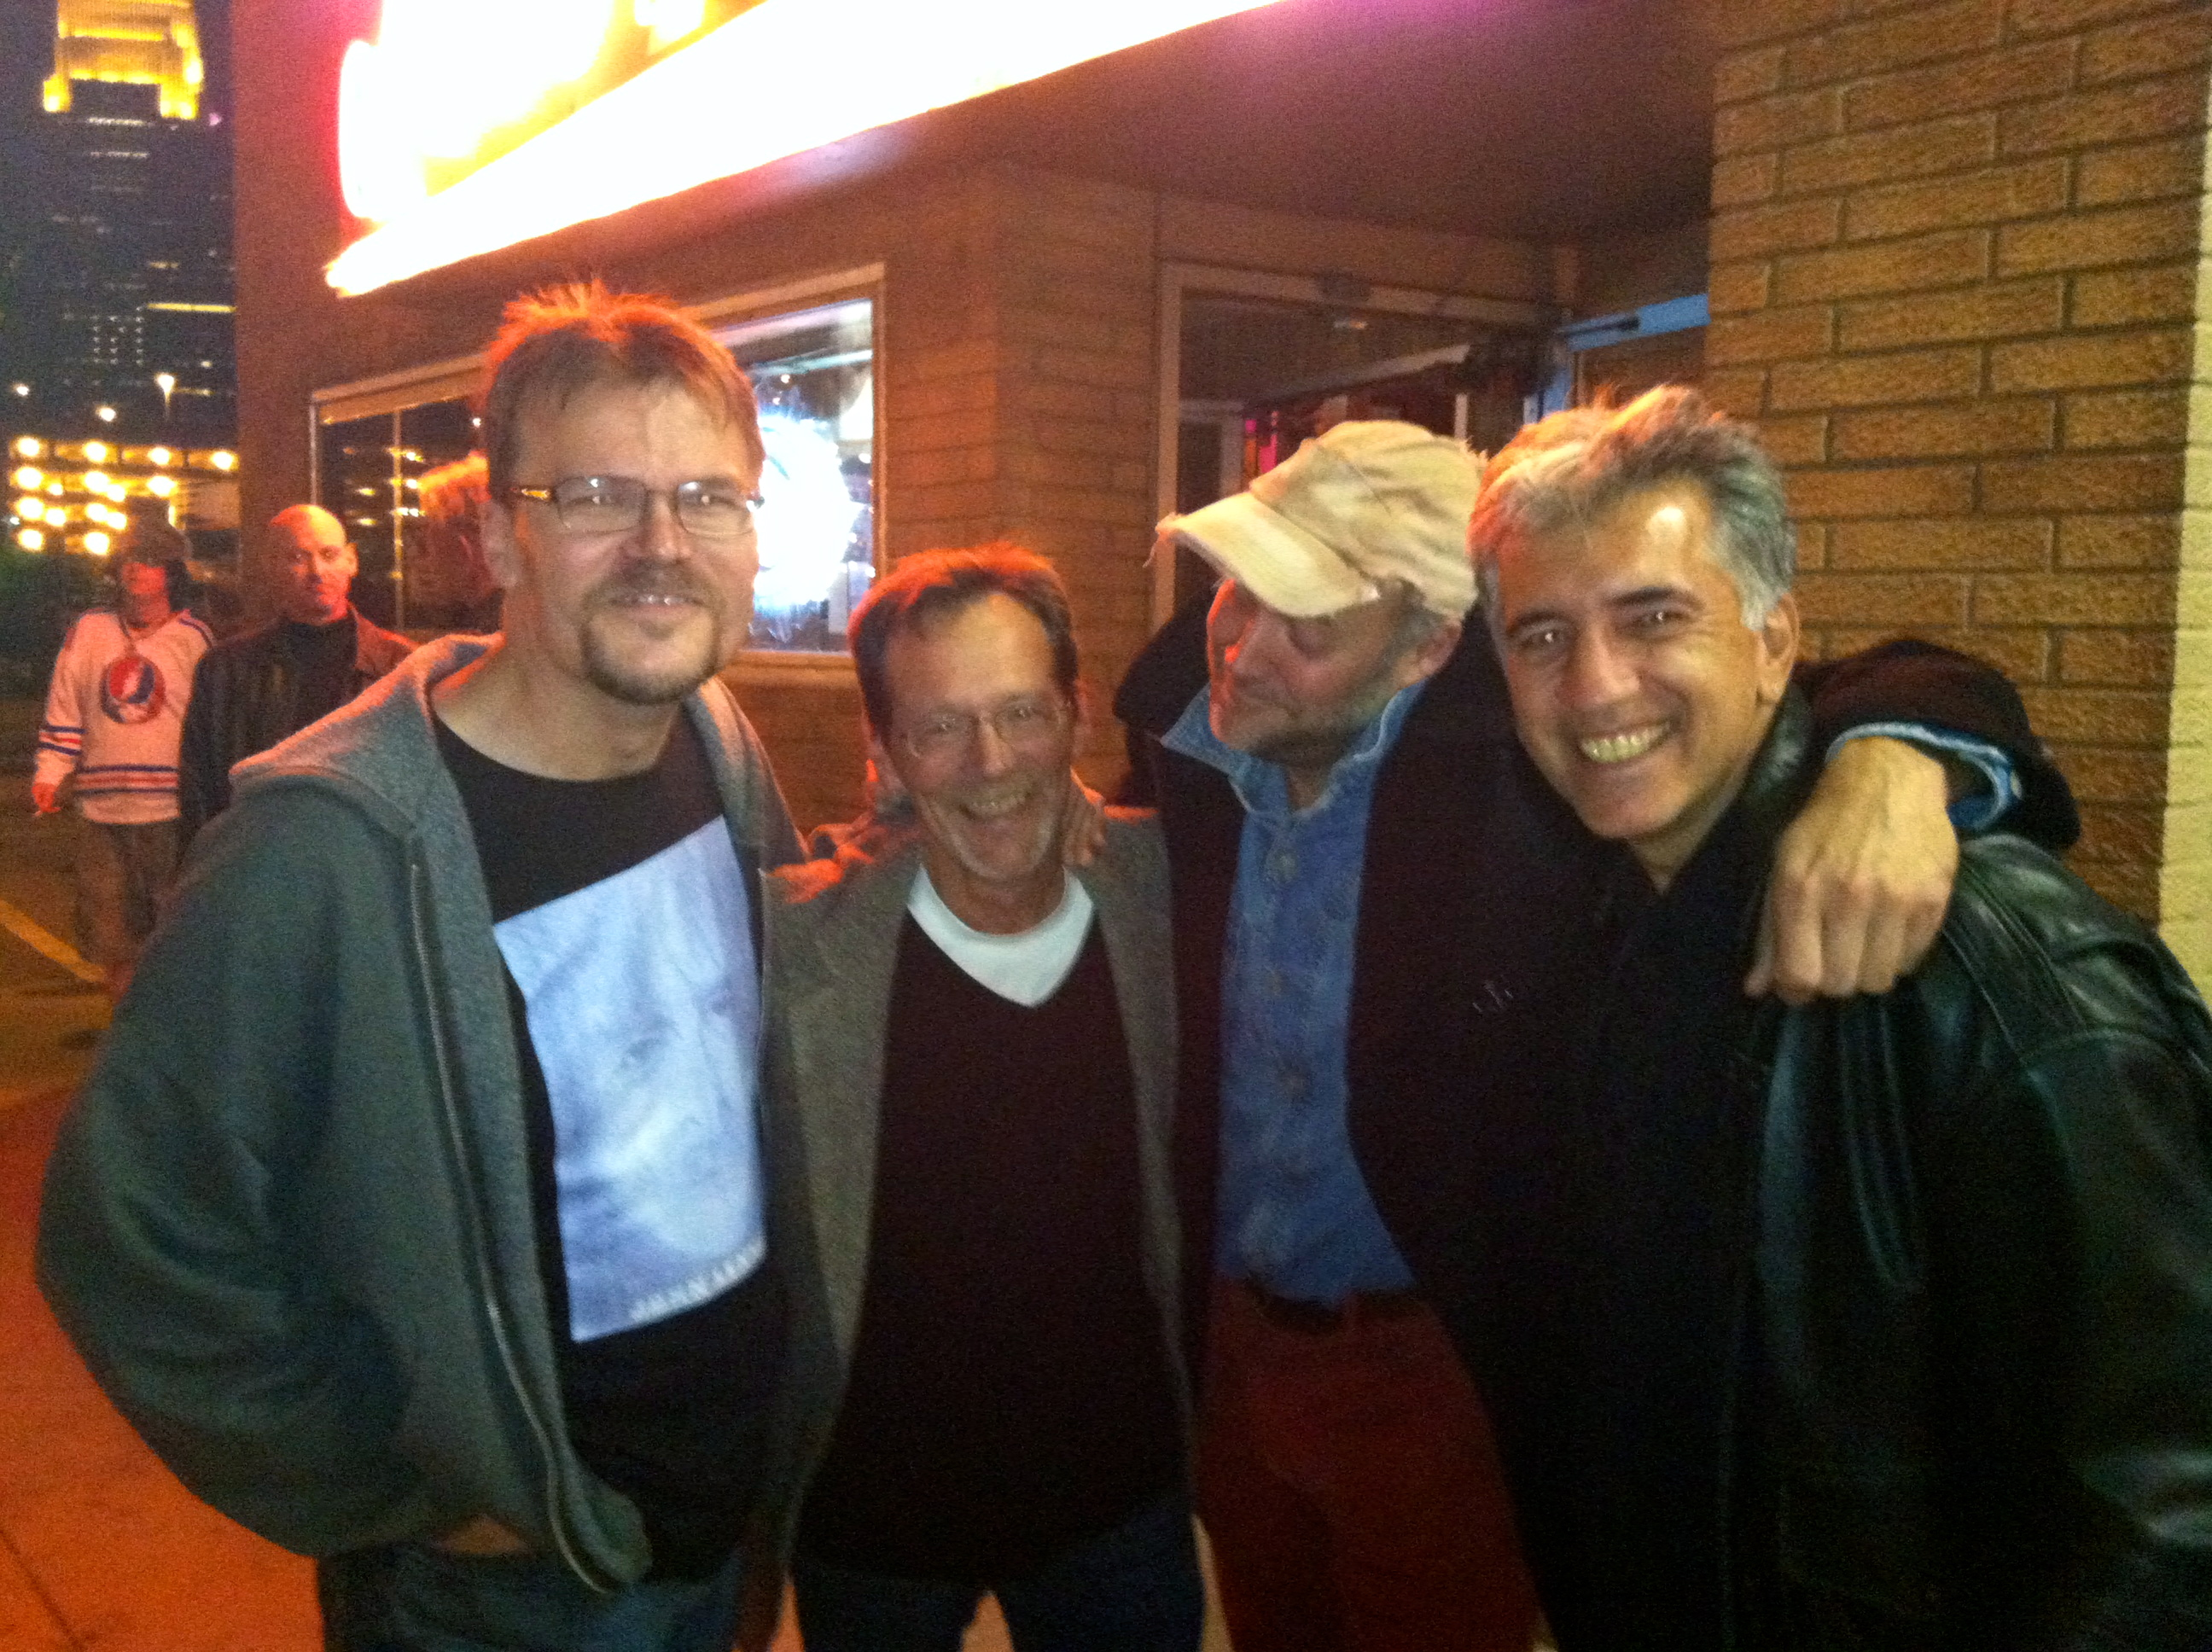 The Oarsmen, left to right, Kevin Featherly, Mike Olk, Barron Whittet and Scott Maida, outside Lee's Liquor Lounge, where the benefit will be held. Photo by Dave Wildermuth.